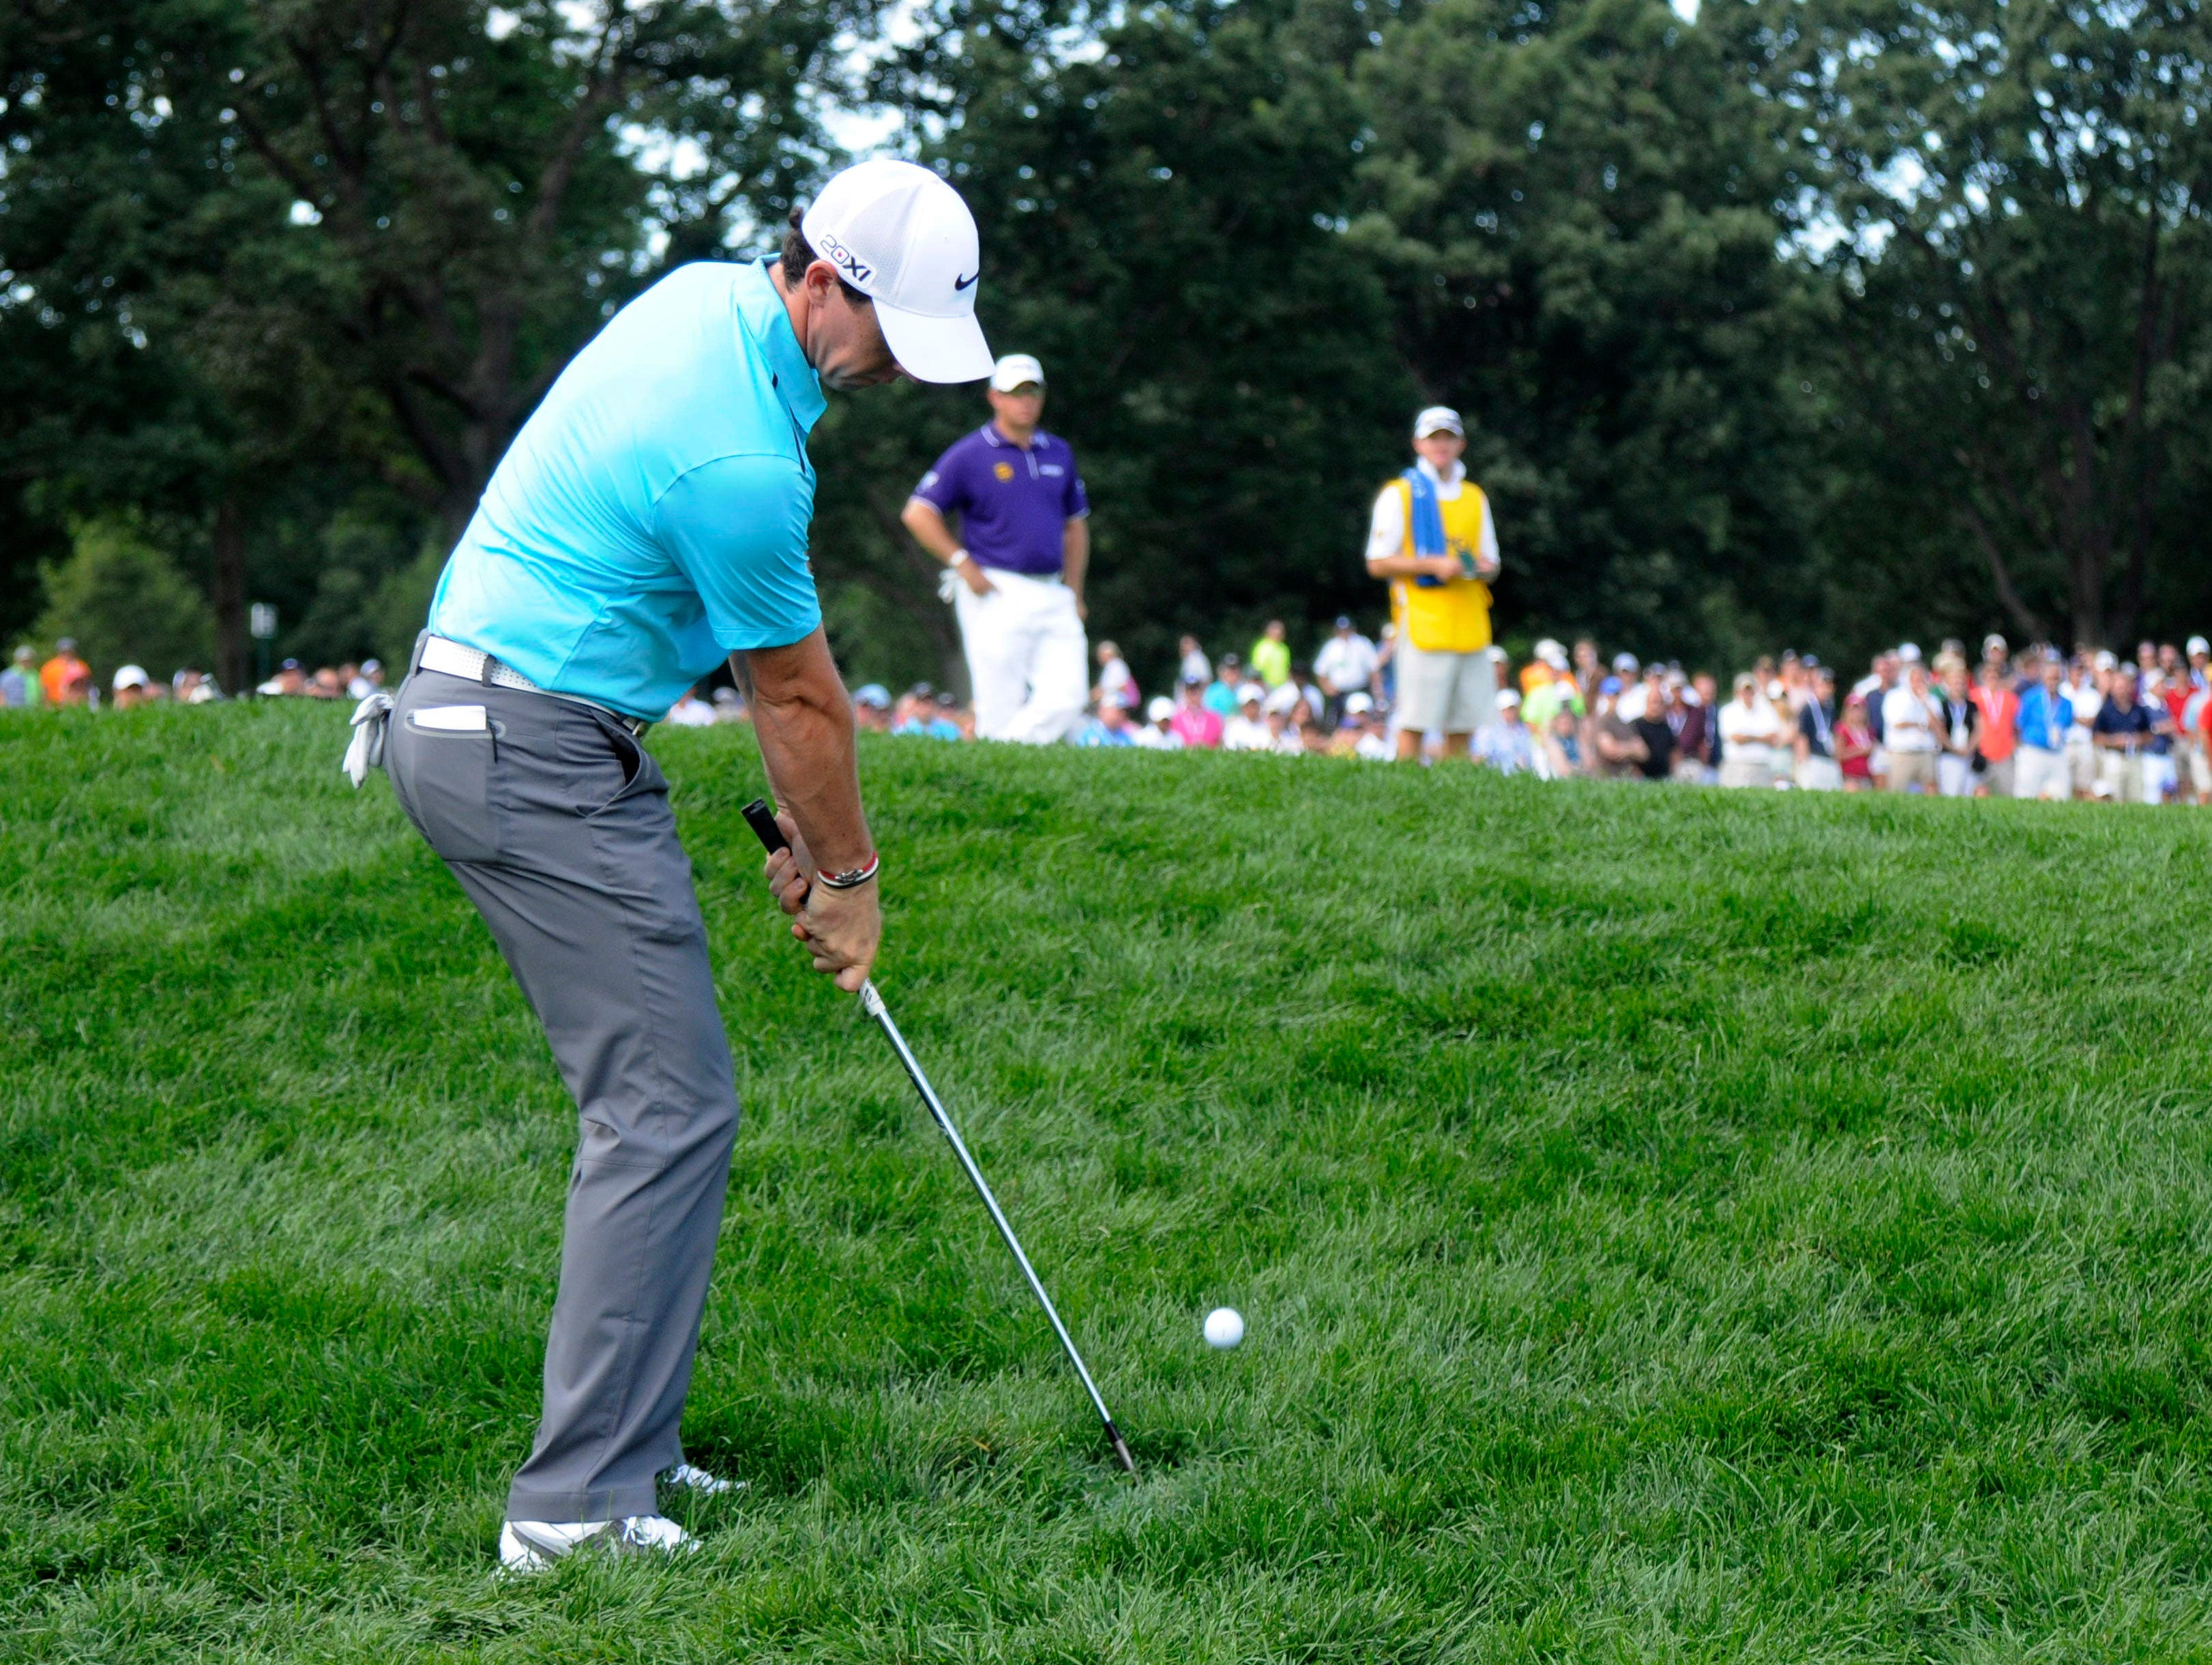 Rory McIlroy chips from the rough on No. 5 on his way to a triple-bogey 7.